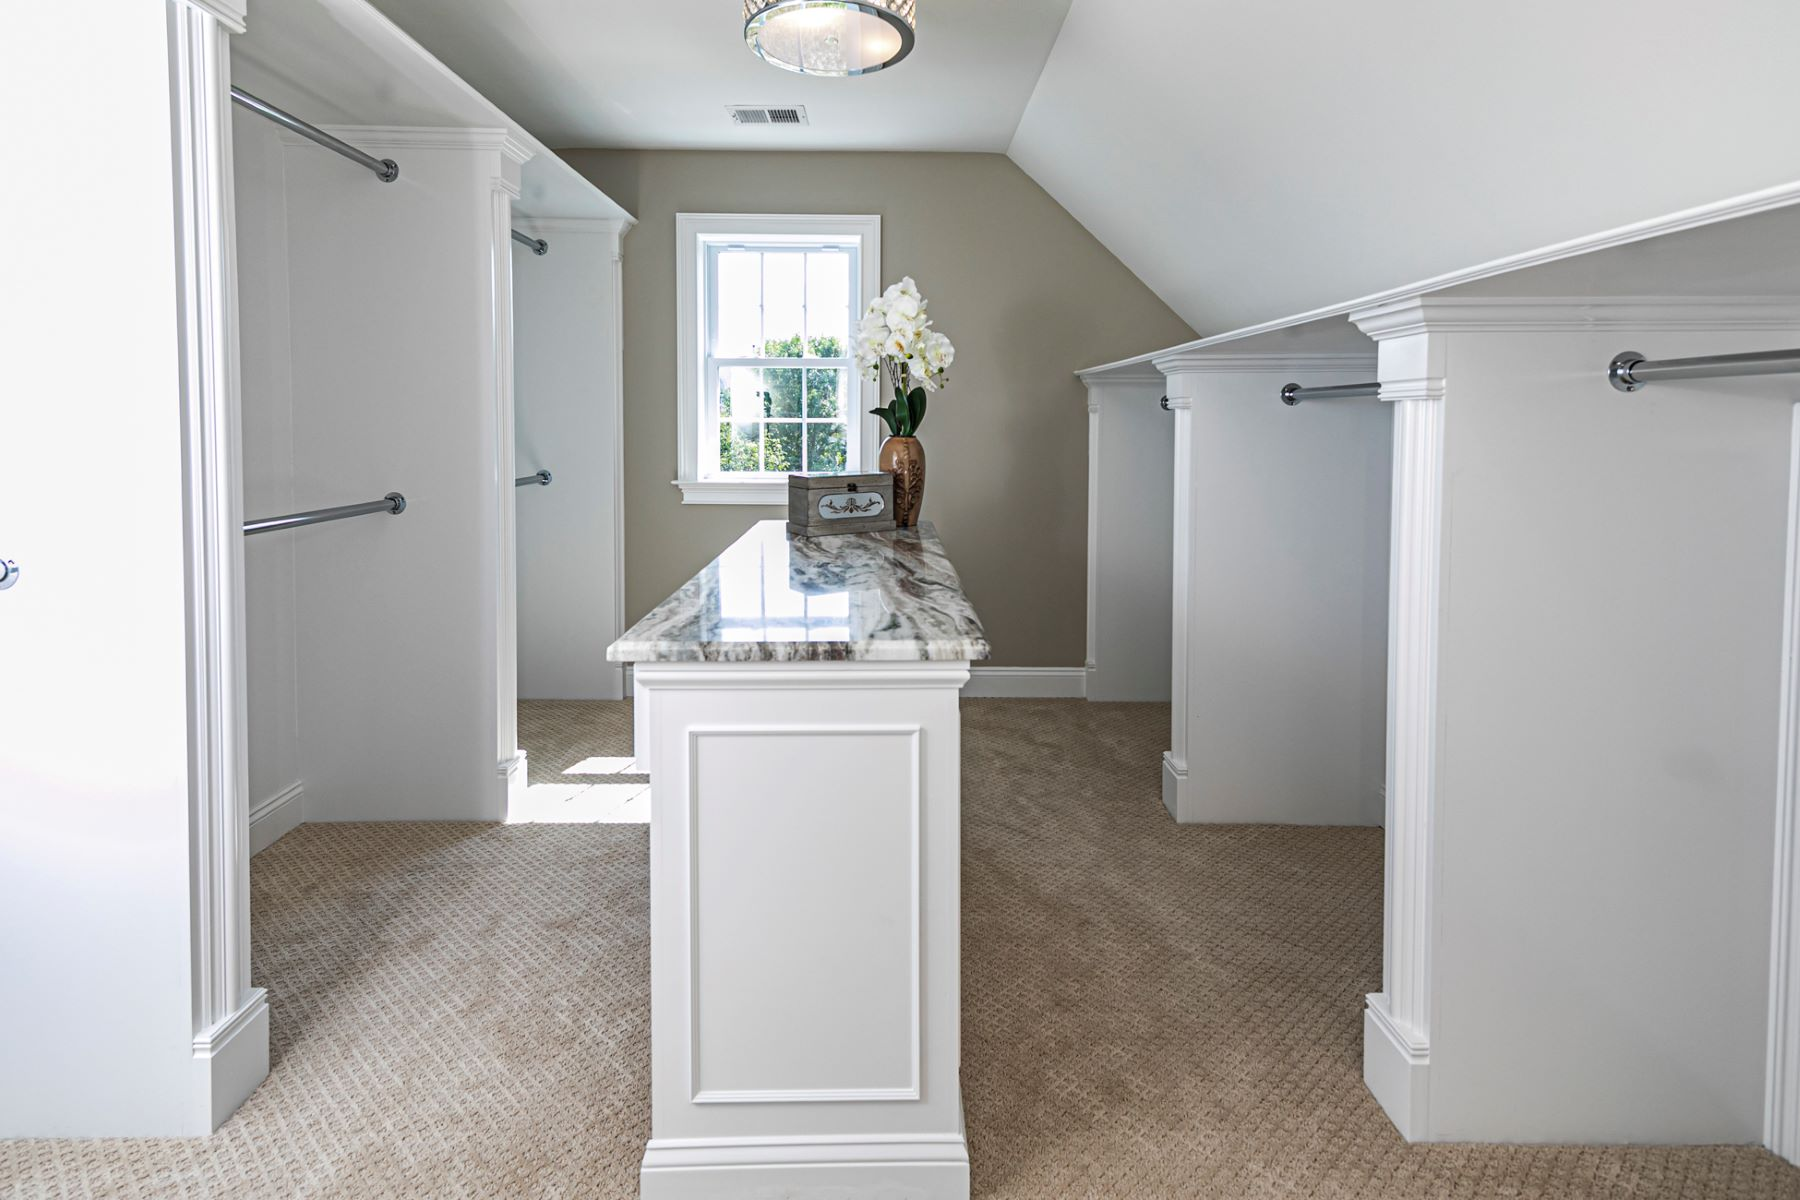 Additional photo for property listing at Newly Constructed Home In A Pristine Neighborhood 28 Meadow Lark Lane, Belle Mead, New Jersey 08502 United States